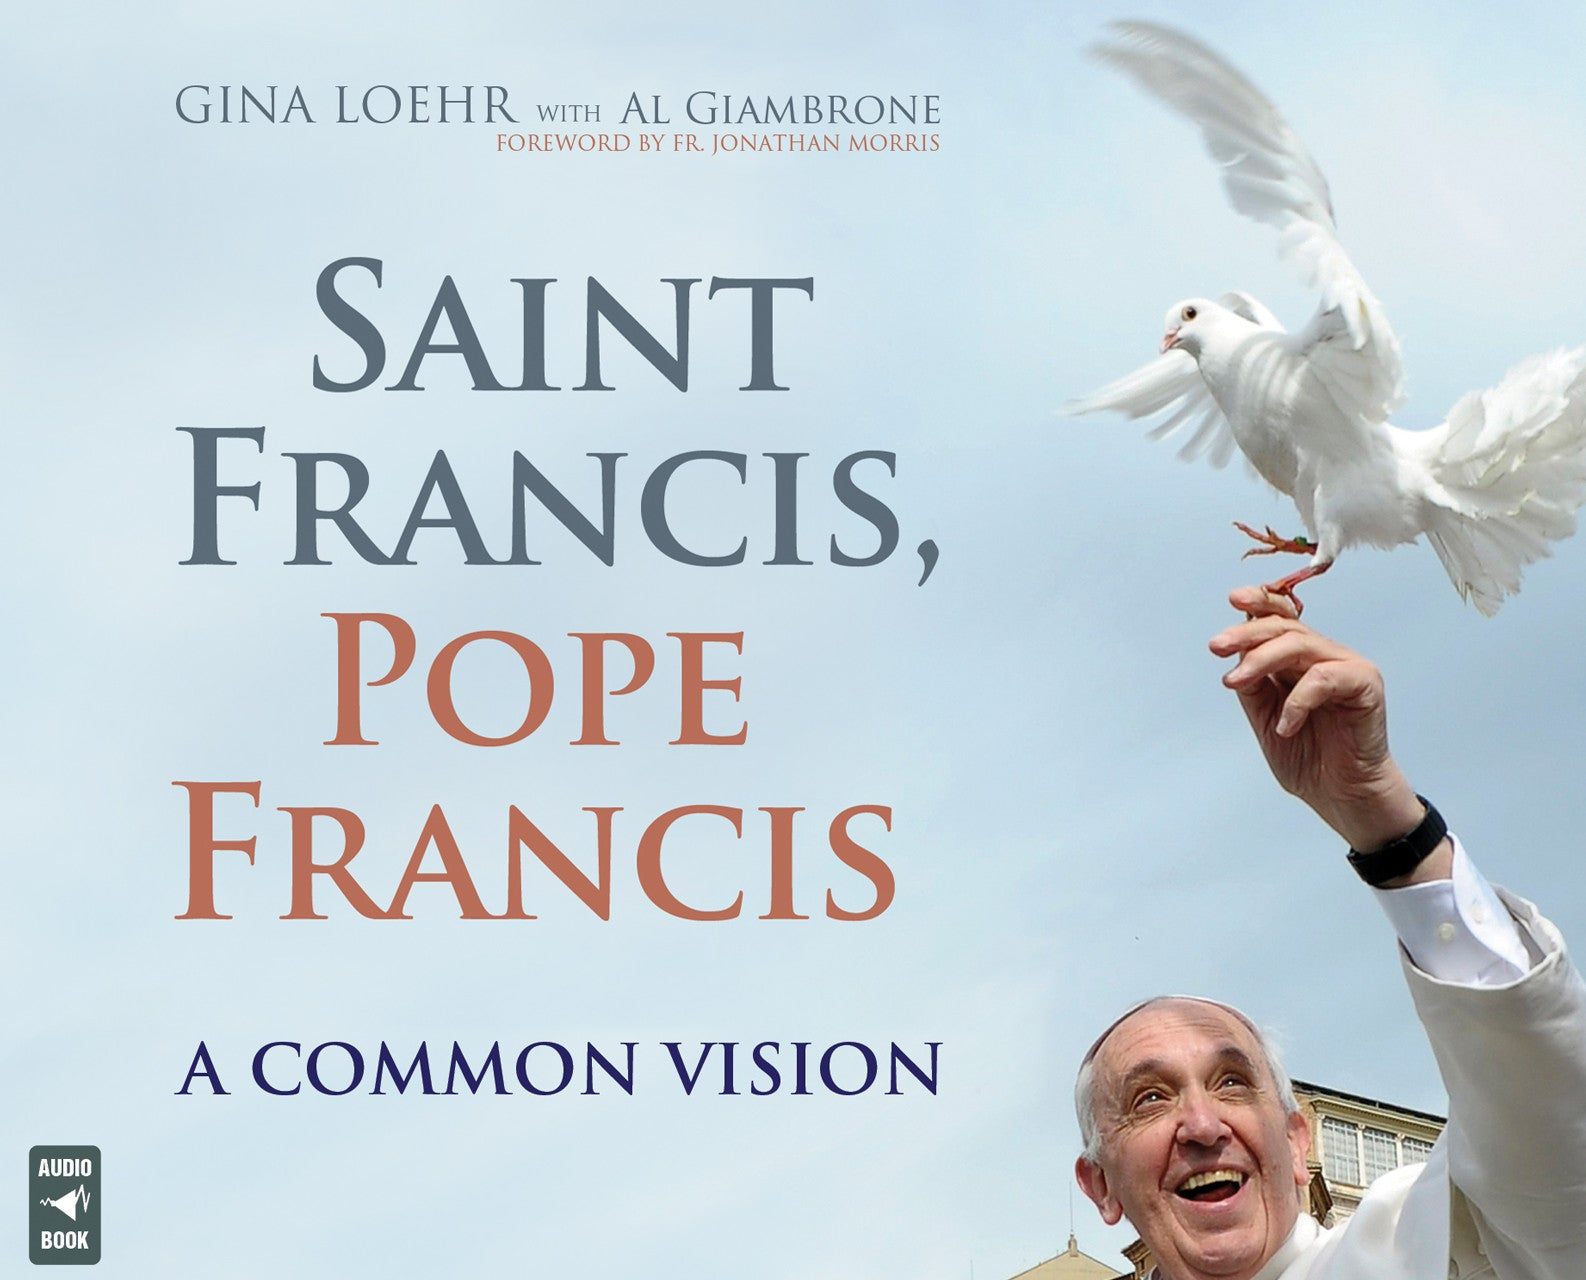 Saint Francis, Pope Francis: A Common Vision audio book